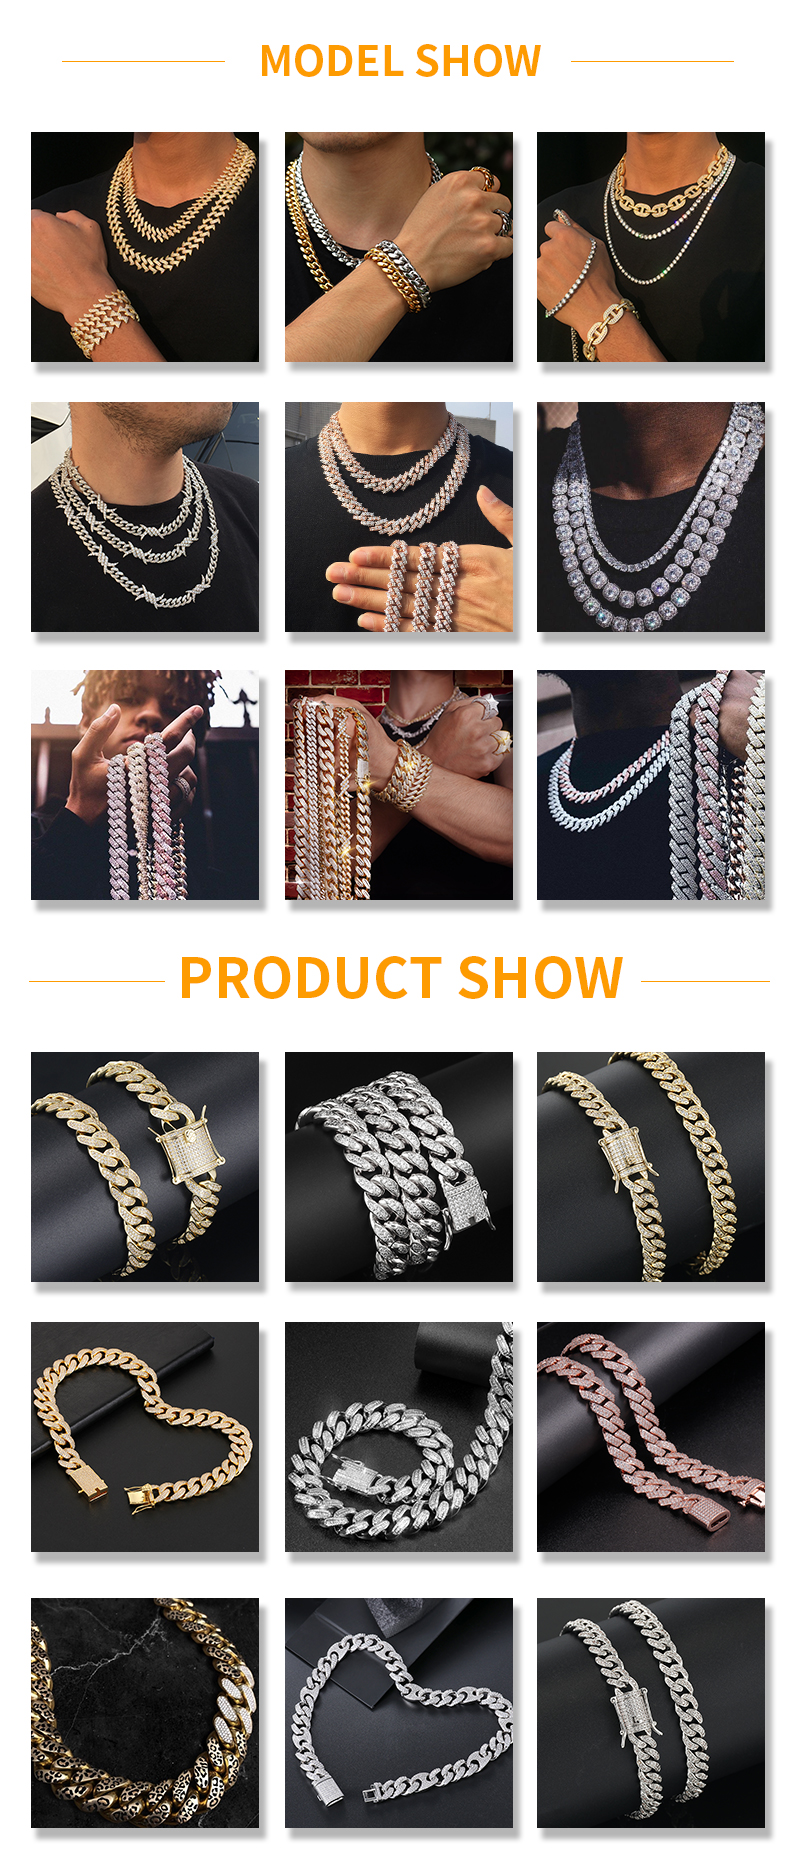 Miss Jewelry Hip Hop Men Women 14K 18K White Multicolor Gold Plated CZ Diamond Iced Out Cuban Link Chain Bracelet Necklace